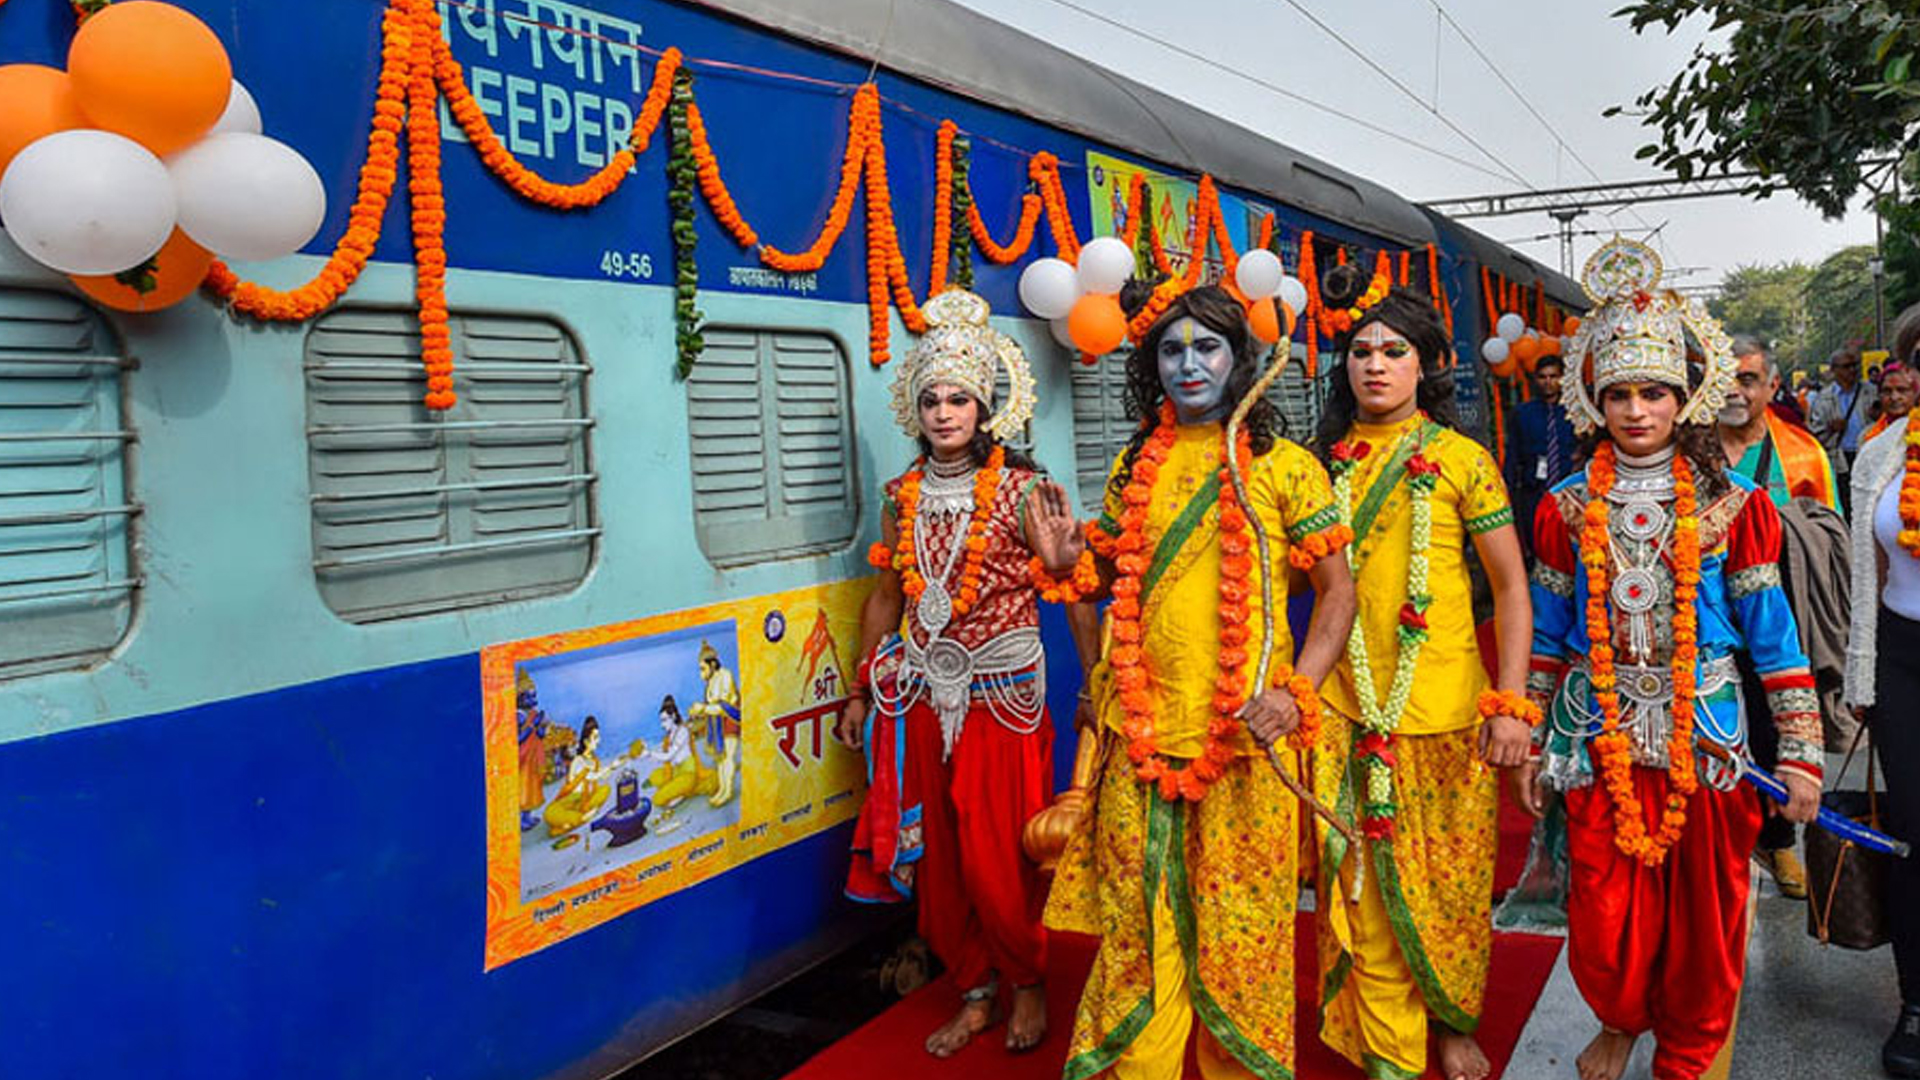 Indian trains with Ramayana-themed interiors & bhajans; serve free langars on board